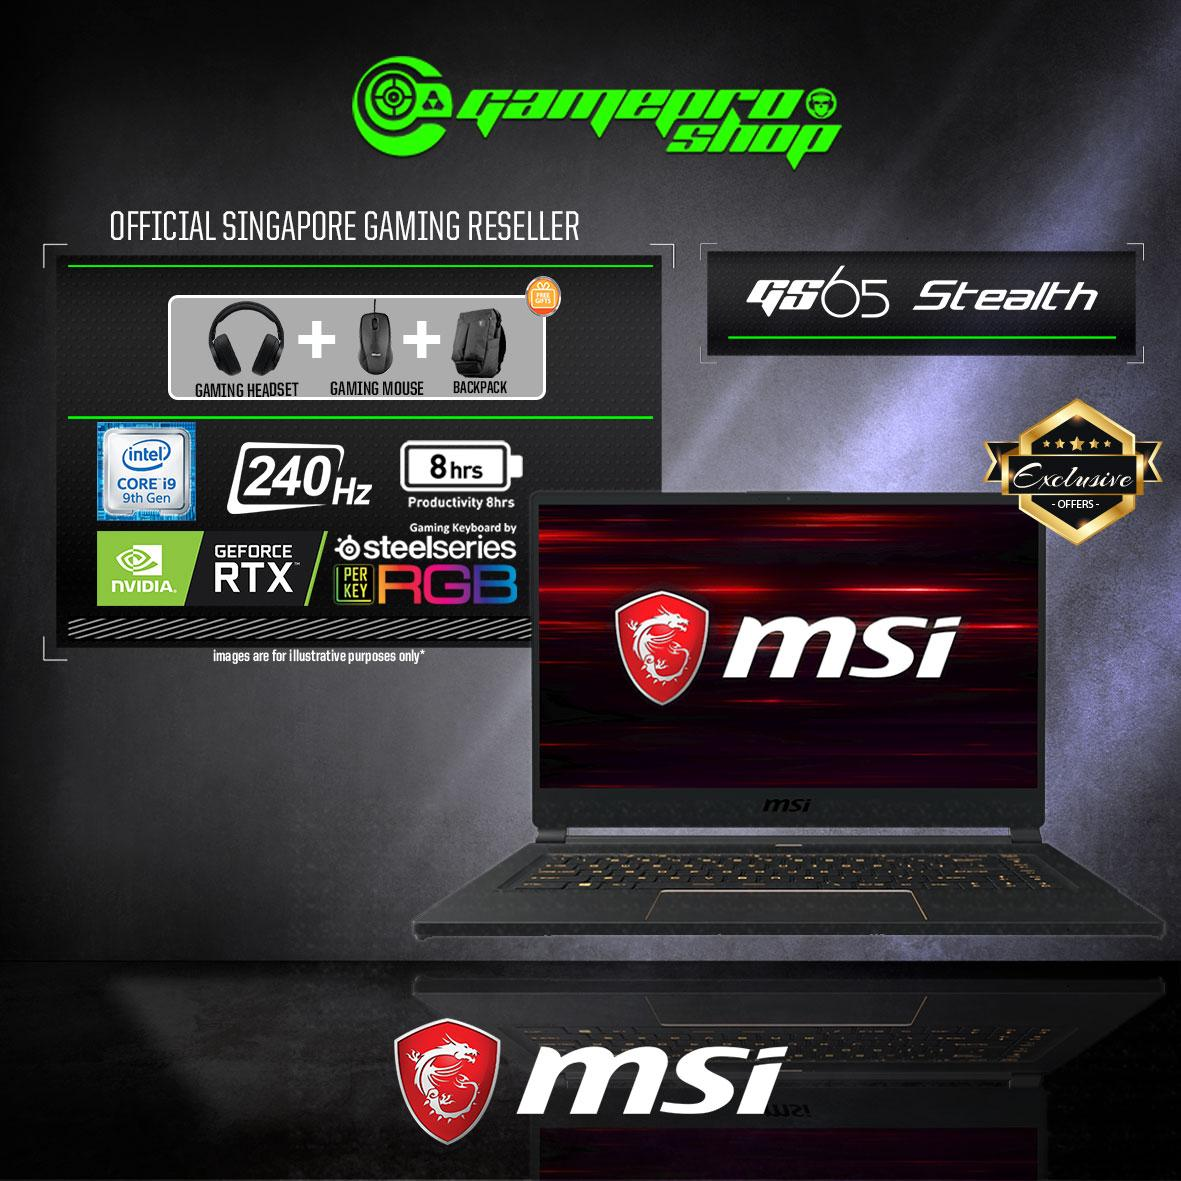 9th Gen MSI GS65 RTX2070 STEALTH 9SF - 679SG EXCLUSIVE (i7-9750H / 16GB / 1TB SSD / WIN 10 PRO) 15.6 FHD with 240Hz Max-Q GAMING LAPTOP *GSS PROMO*